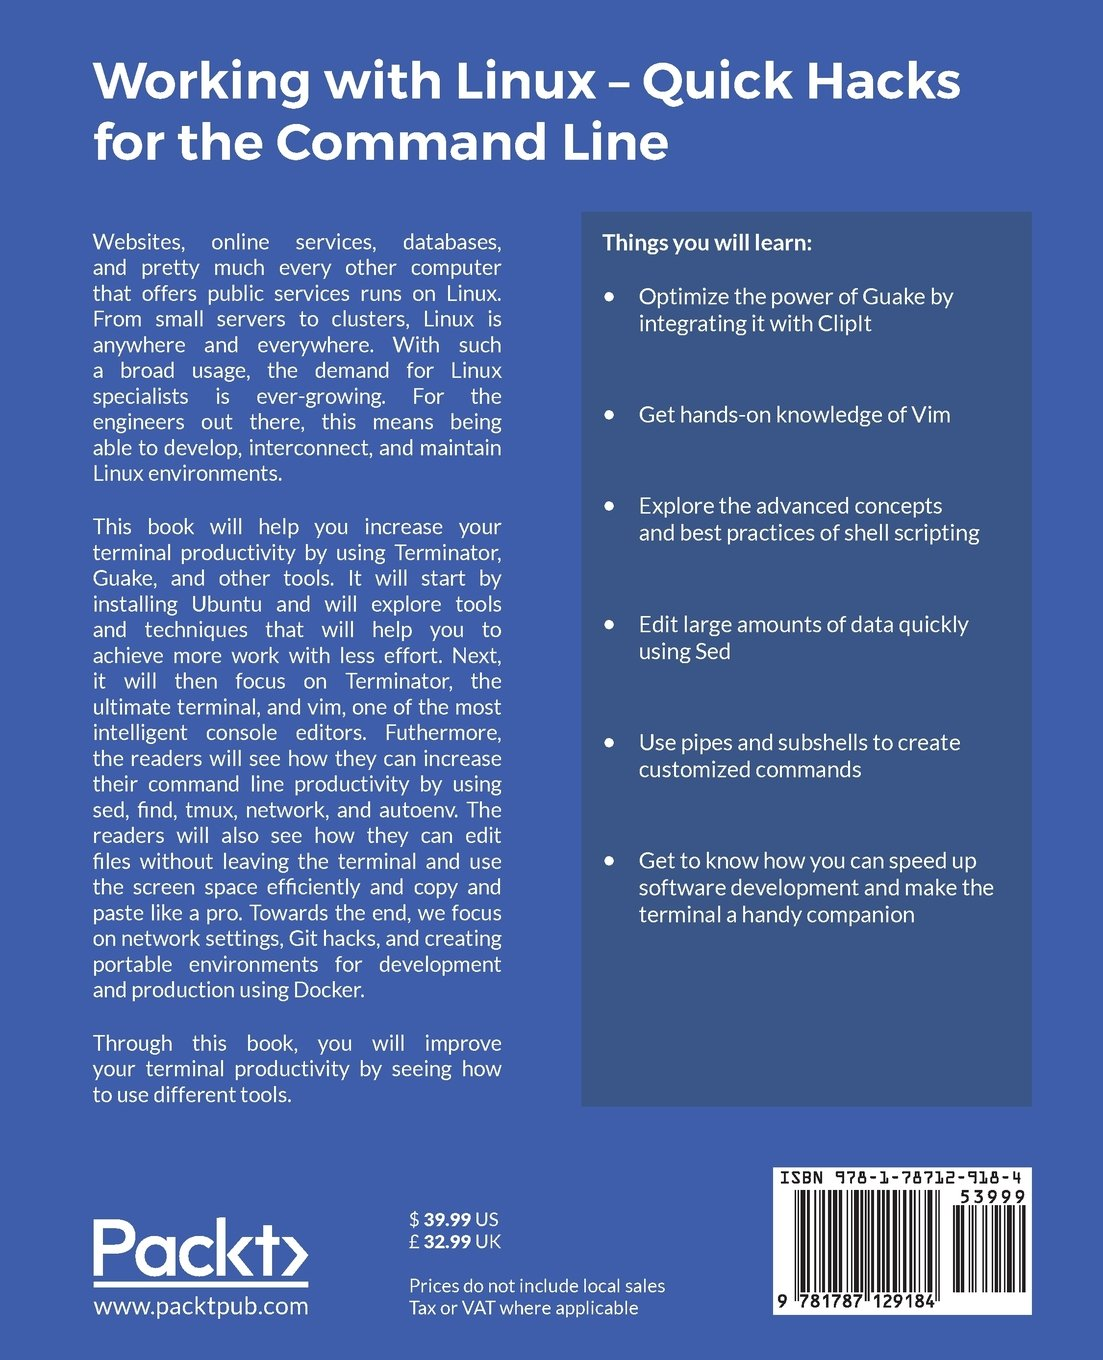 Working with Linux - Quick Hacks for the Command Line: Command line